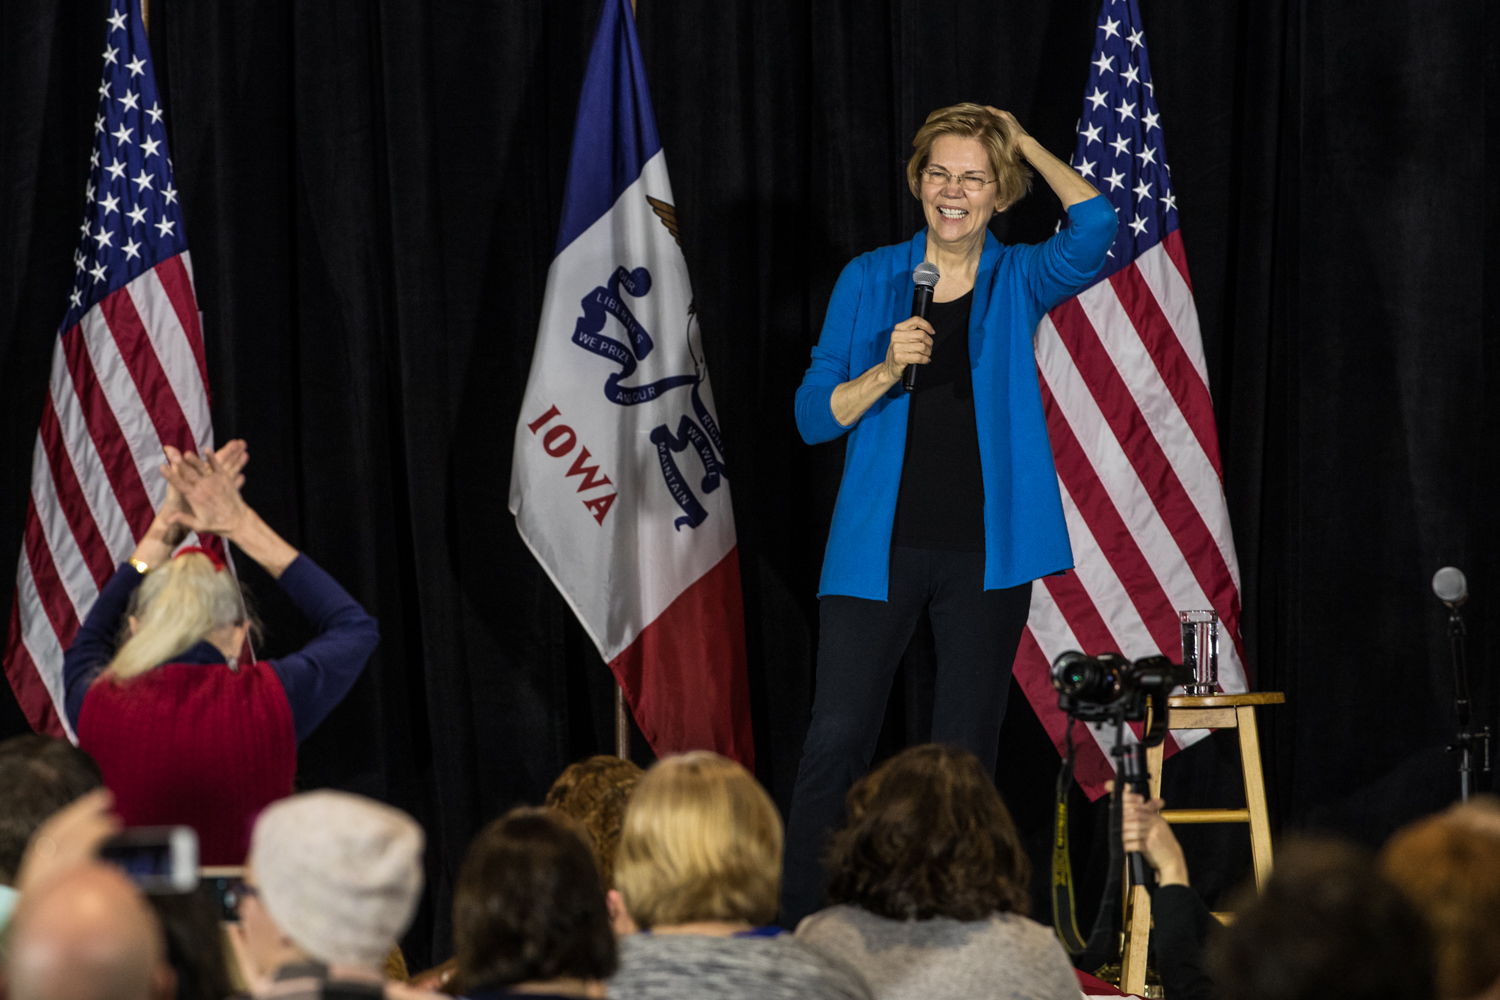 Supporters+applaud+during+a+campaign+rally+in+Cedar+Rapids%2C+IA%2C+on+Sunday%2C+February+10%2C+2019.+